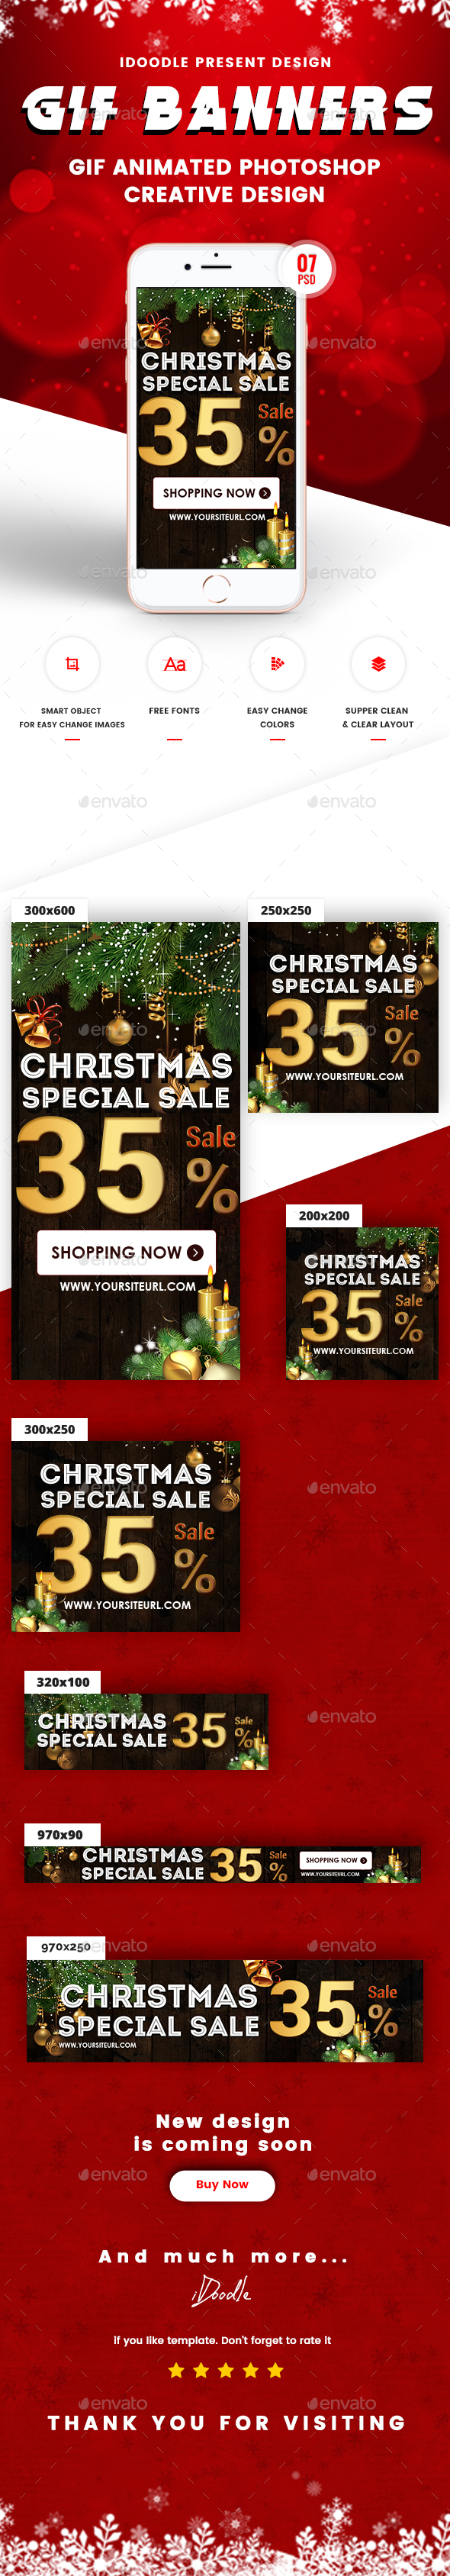 Animated GIF Christmas Banners Ad - Banners & Ads Web Elements